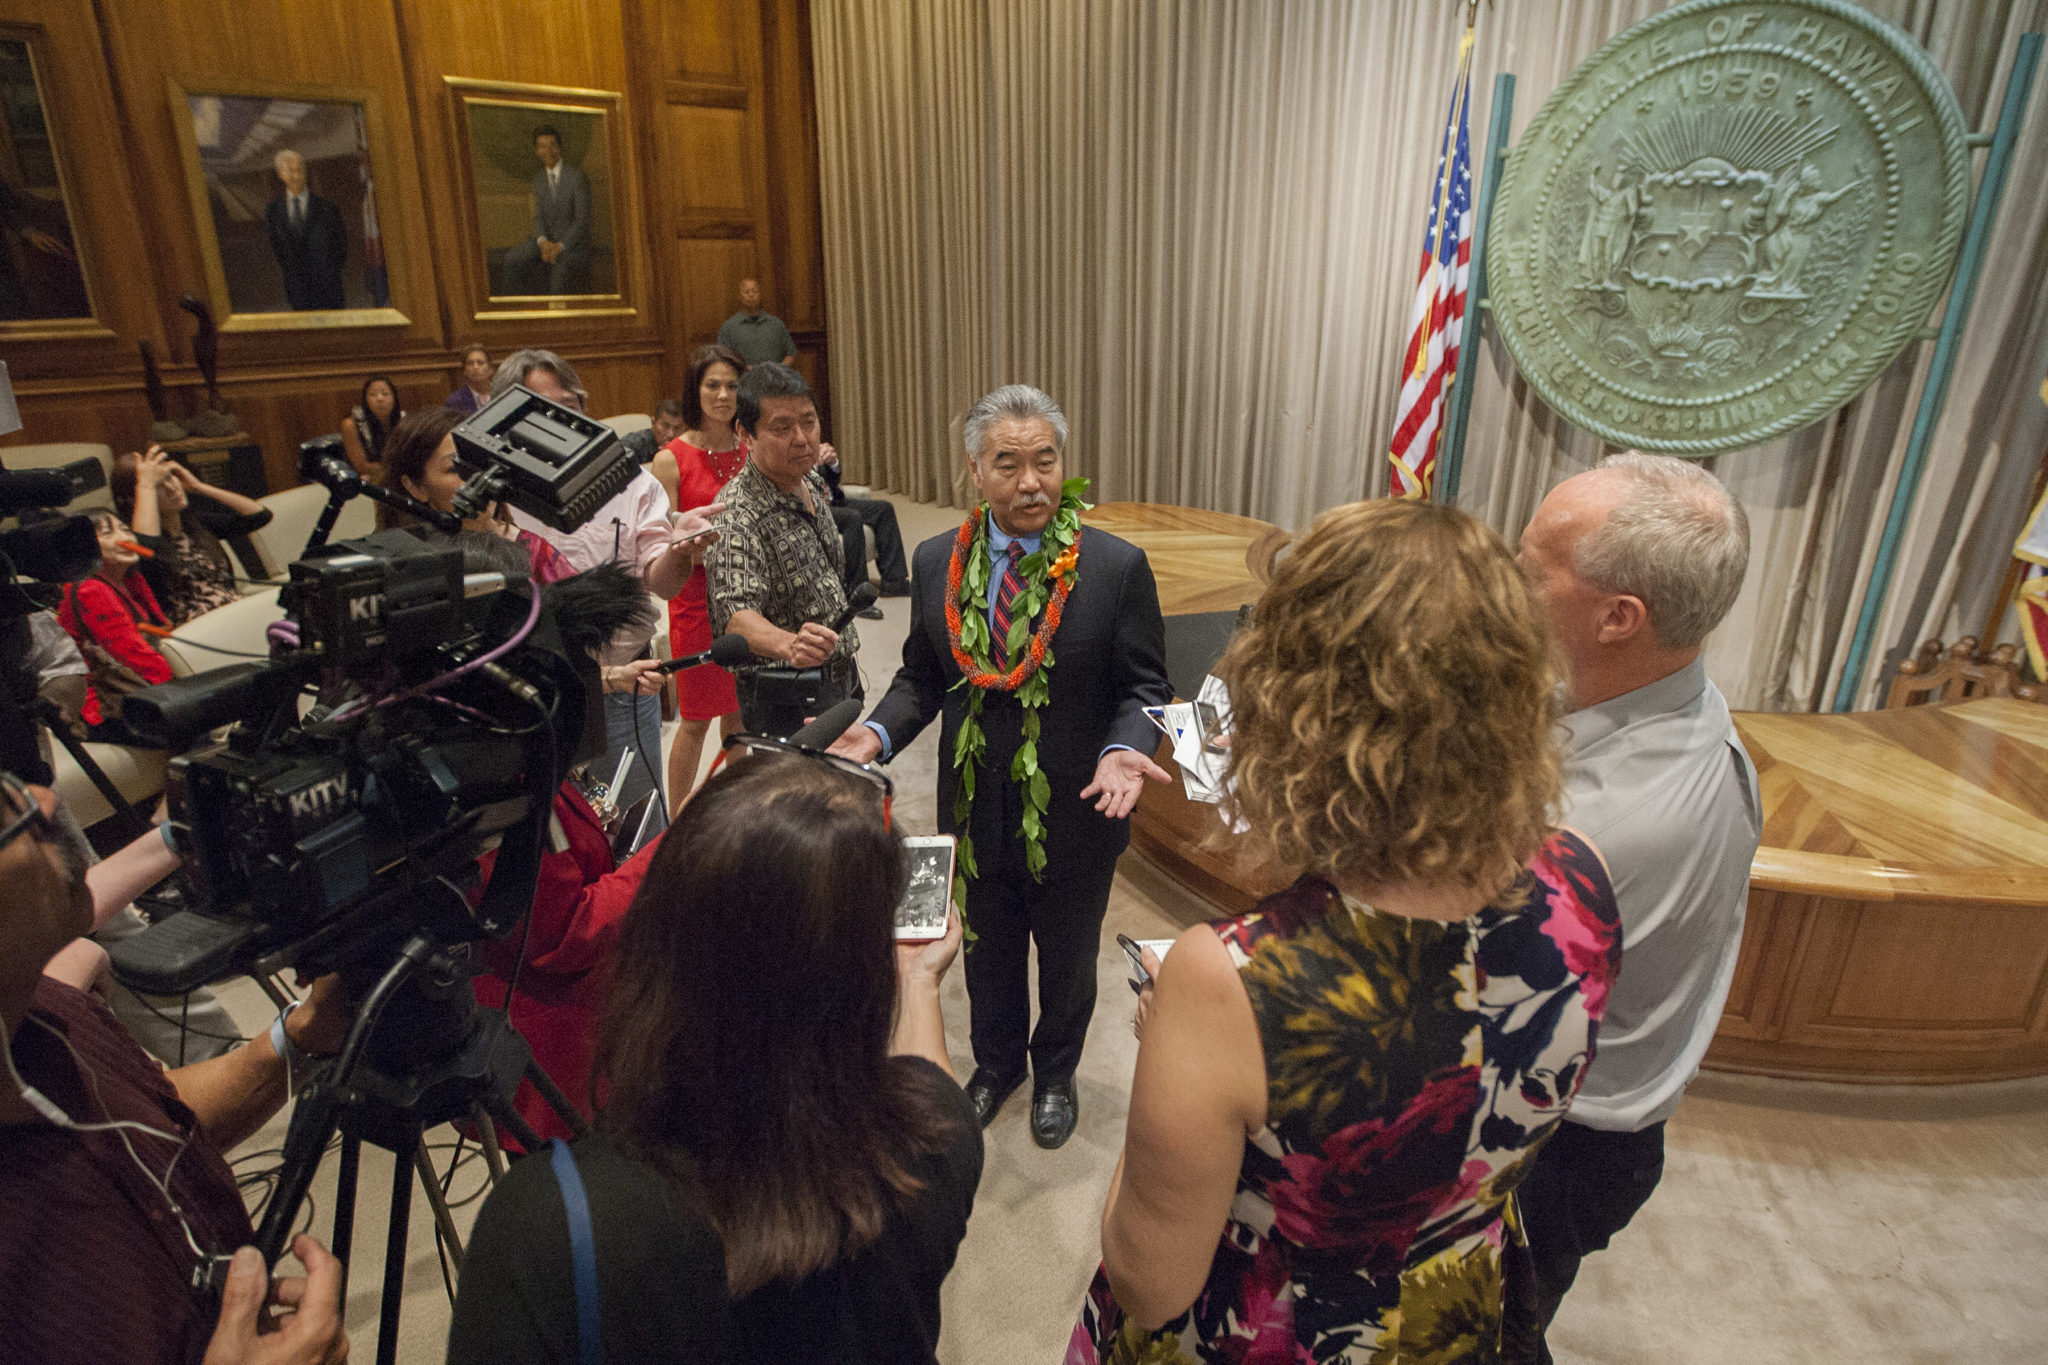 <p>Gov. David Ige holds a press conference after the Legislature's opening day festivities.</p>